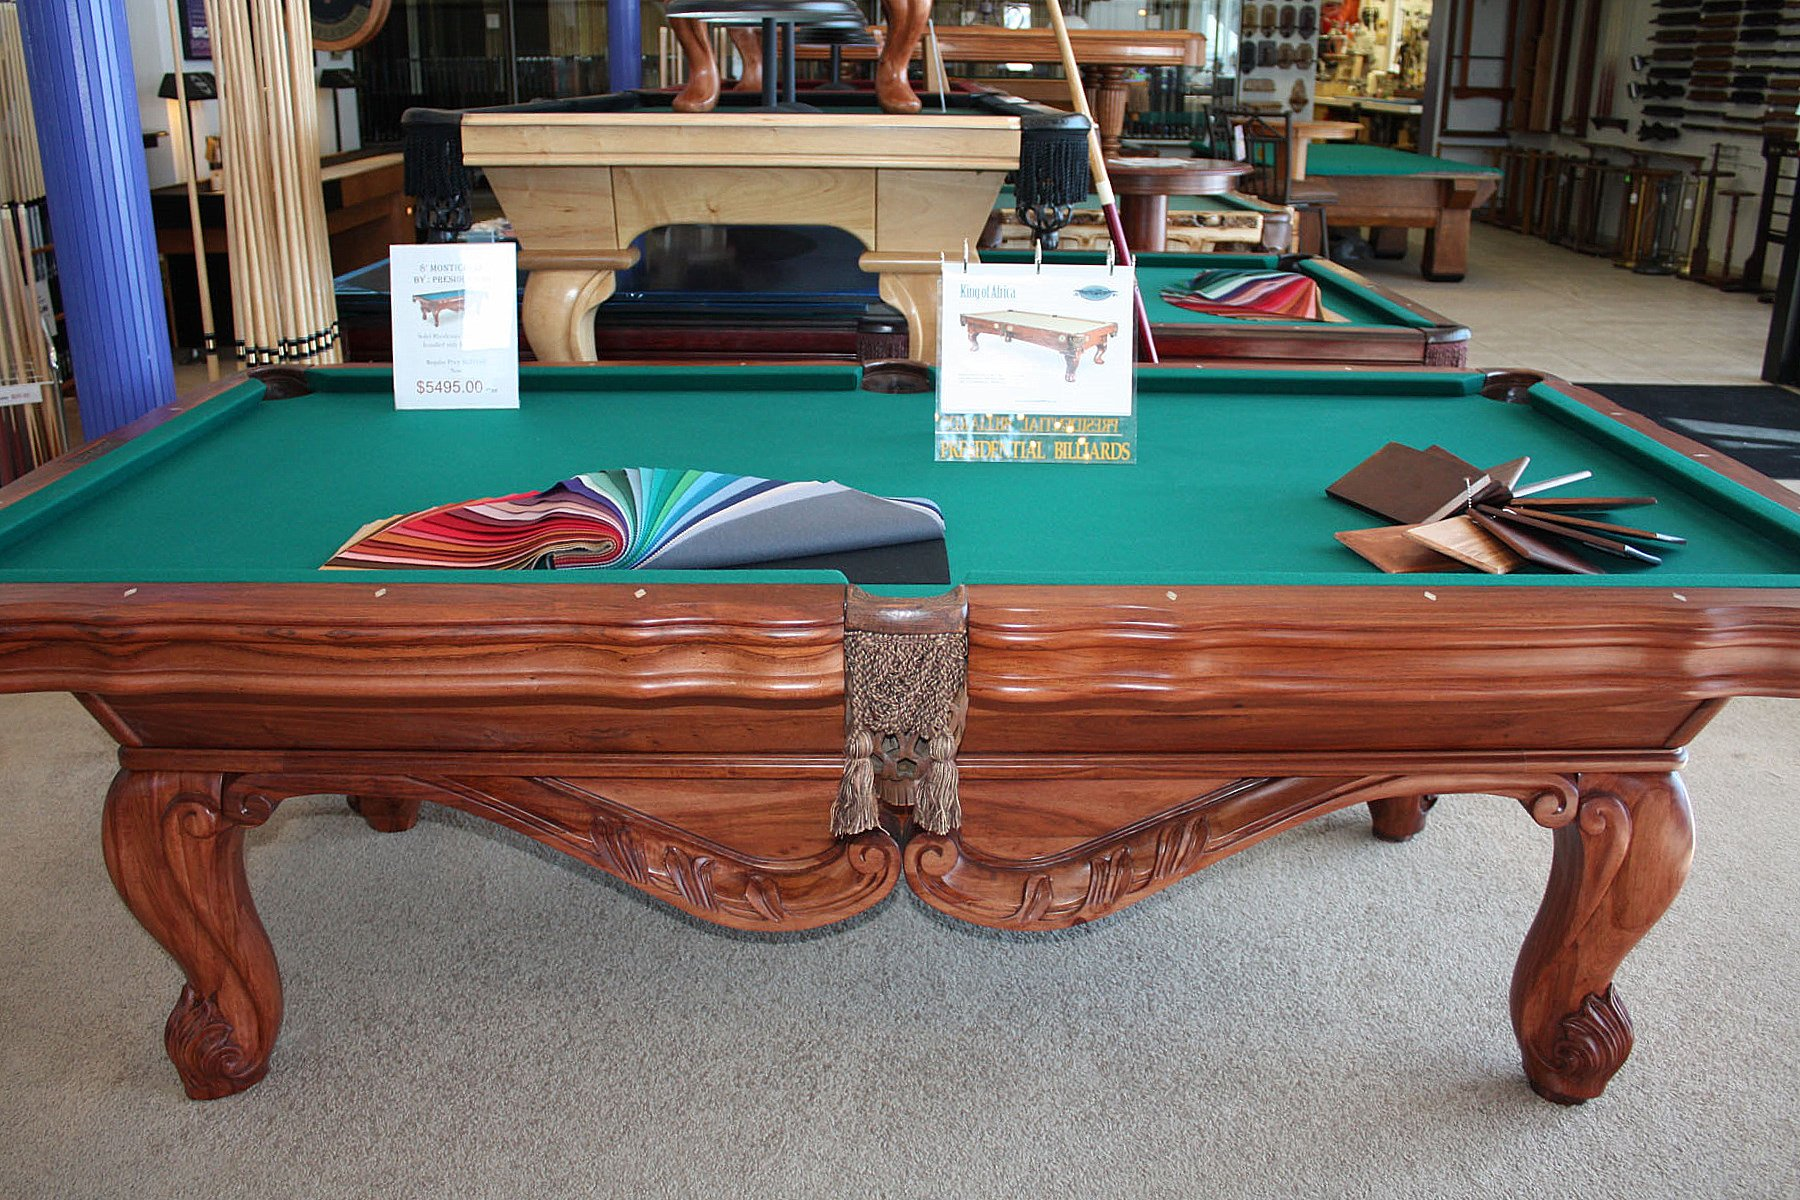 How much do pool tables cost in south africa designer for Pool table 6 x 3